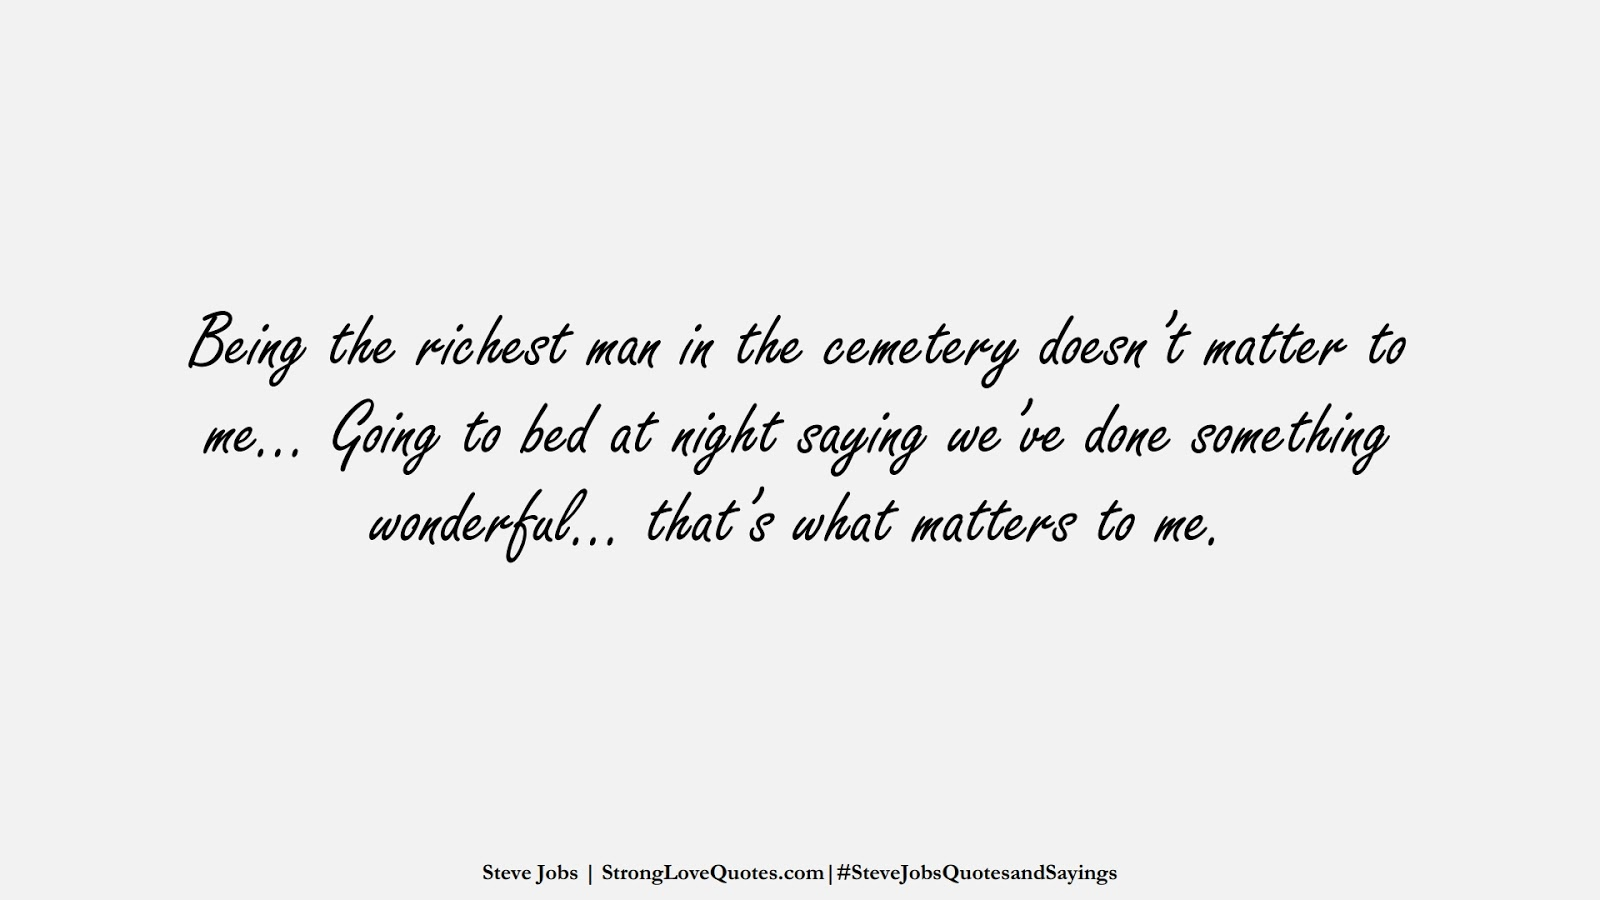 Being the richest man in the cemetery doesn't matter to me… Going to bed at night saying we've done something wonderful… that's what matters to me. (Steve Jobs);  #SteveJobsQuotesandSayings